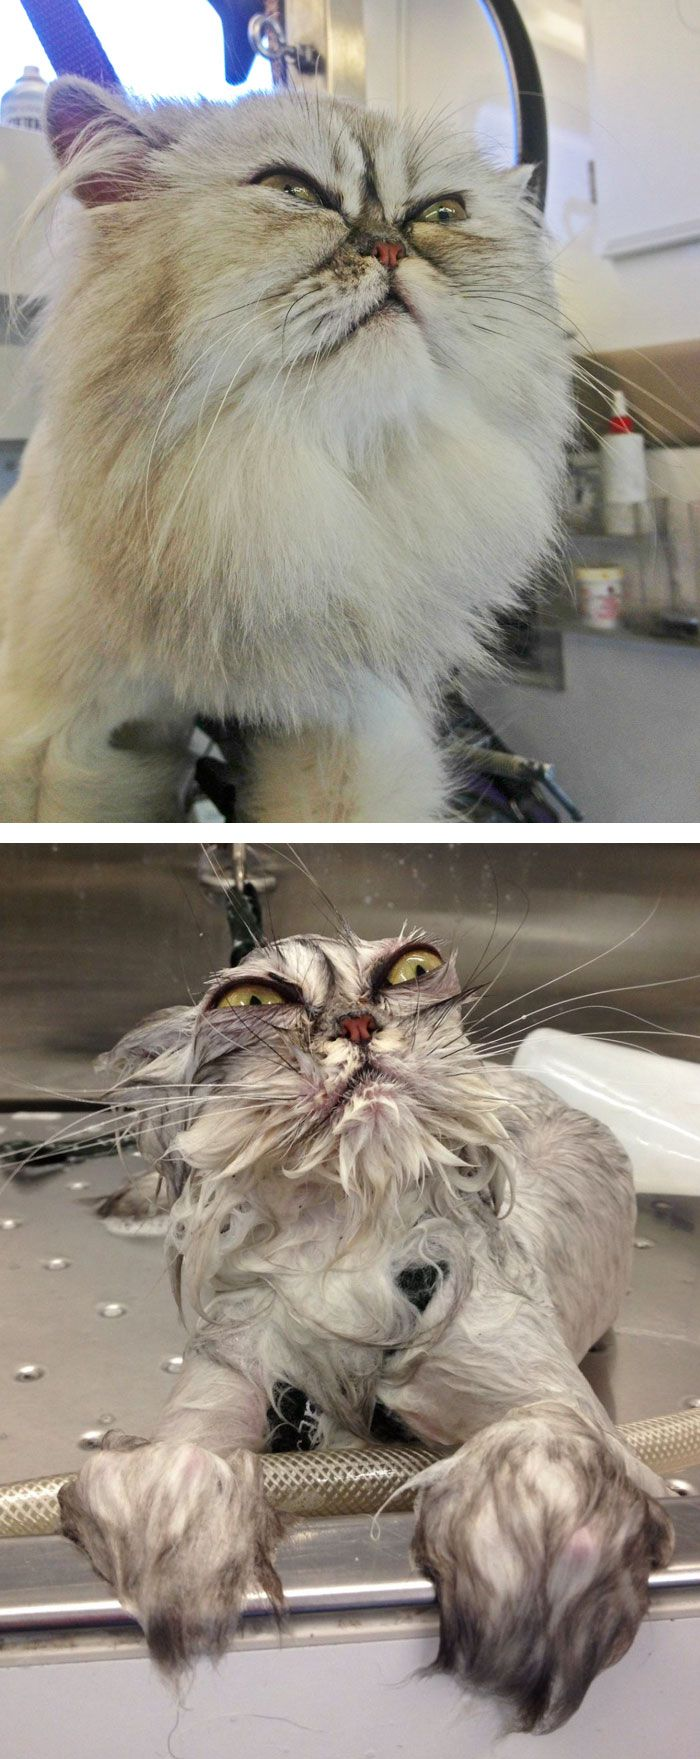 funny-wet-pets-before-after-bath-dogs-cats-49-5728af03c4553__700